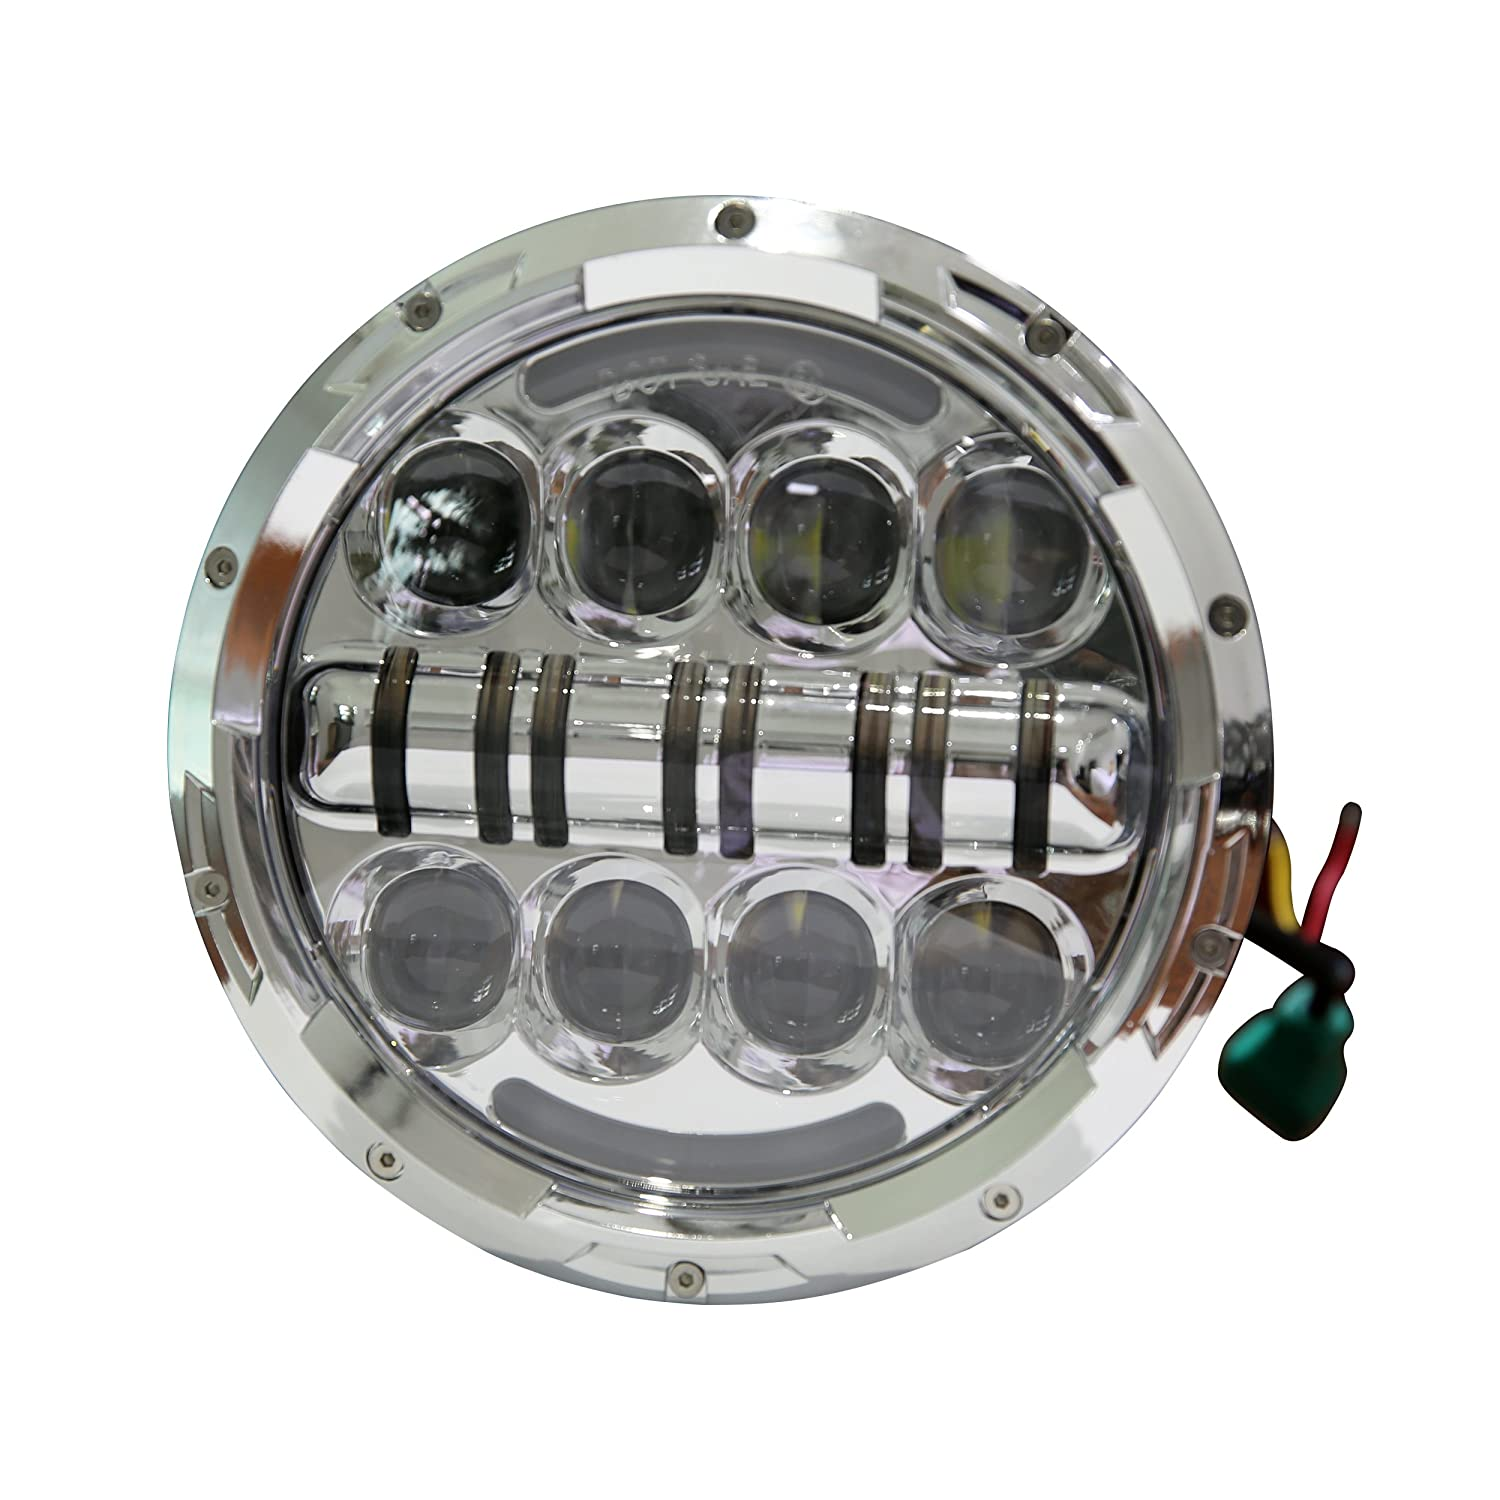 Wisamic 7' 80W Motorcycle LED Headlight Angle Eyes with Amber Signal Halo DRL Halo Compatible with Street Glide Road King Ultra Classic Electra Tri Cvo Heritage Softail Deluxe Fatboy-Silver